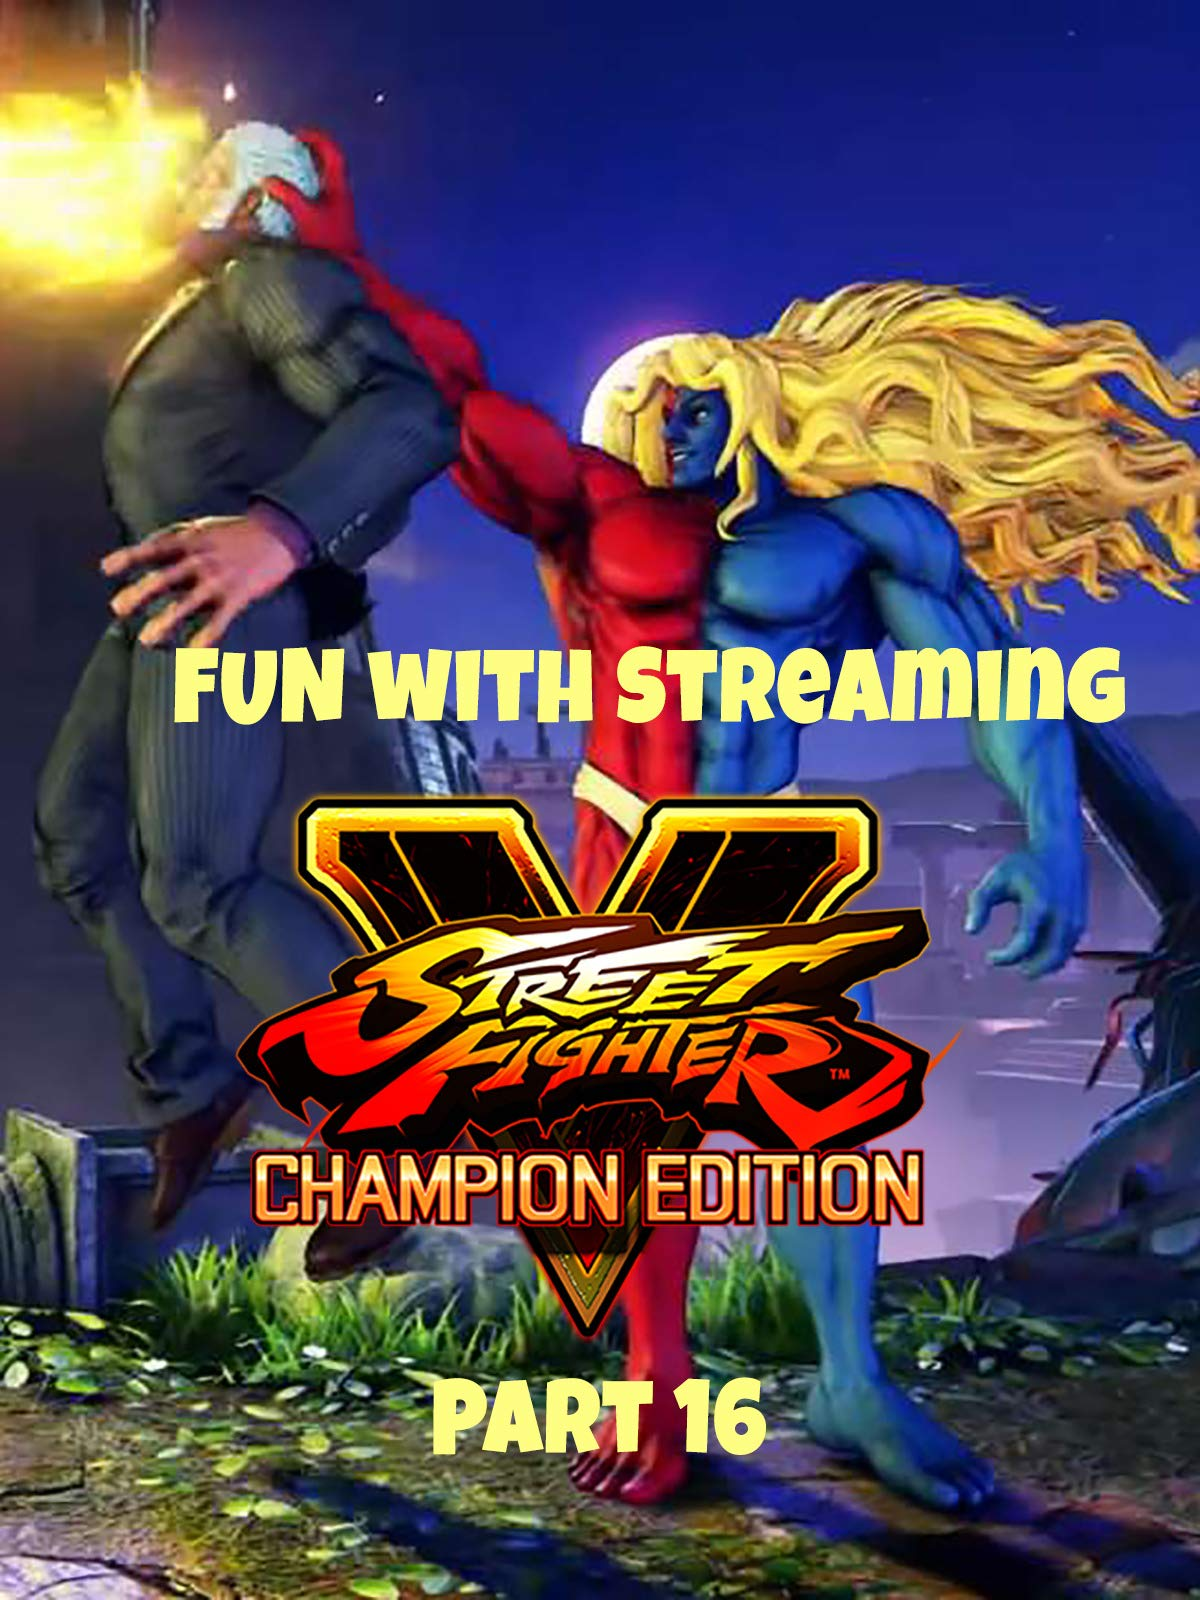 Clip: Fun with Streaming Street Fighter V Champion Edition Part 16 on Amazon Prime Video UK